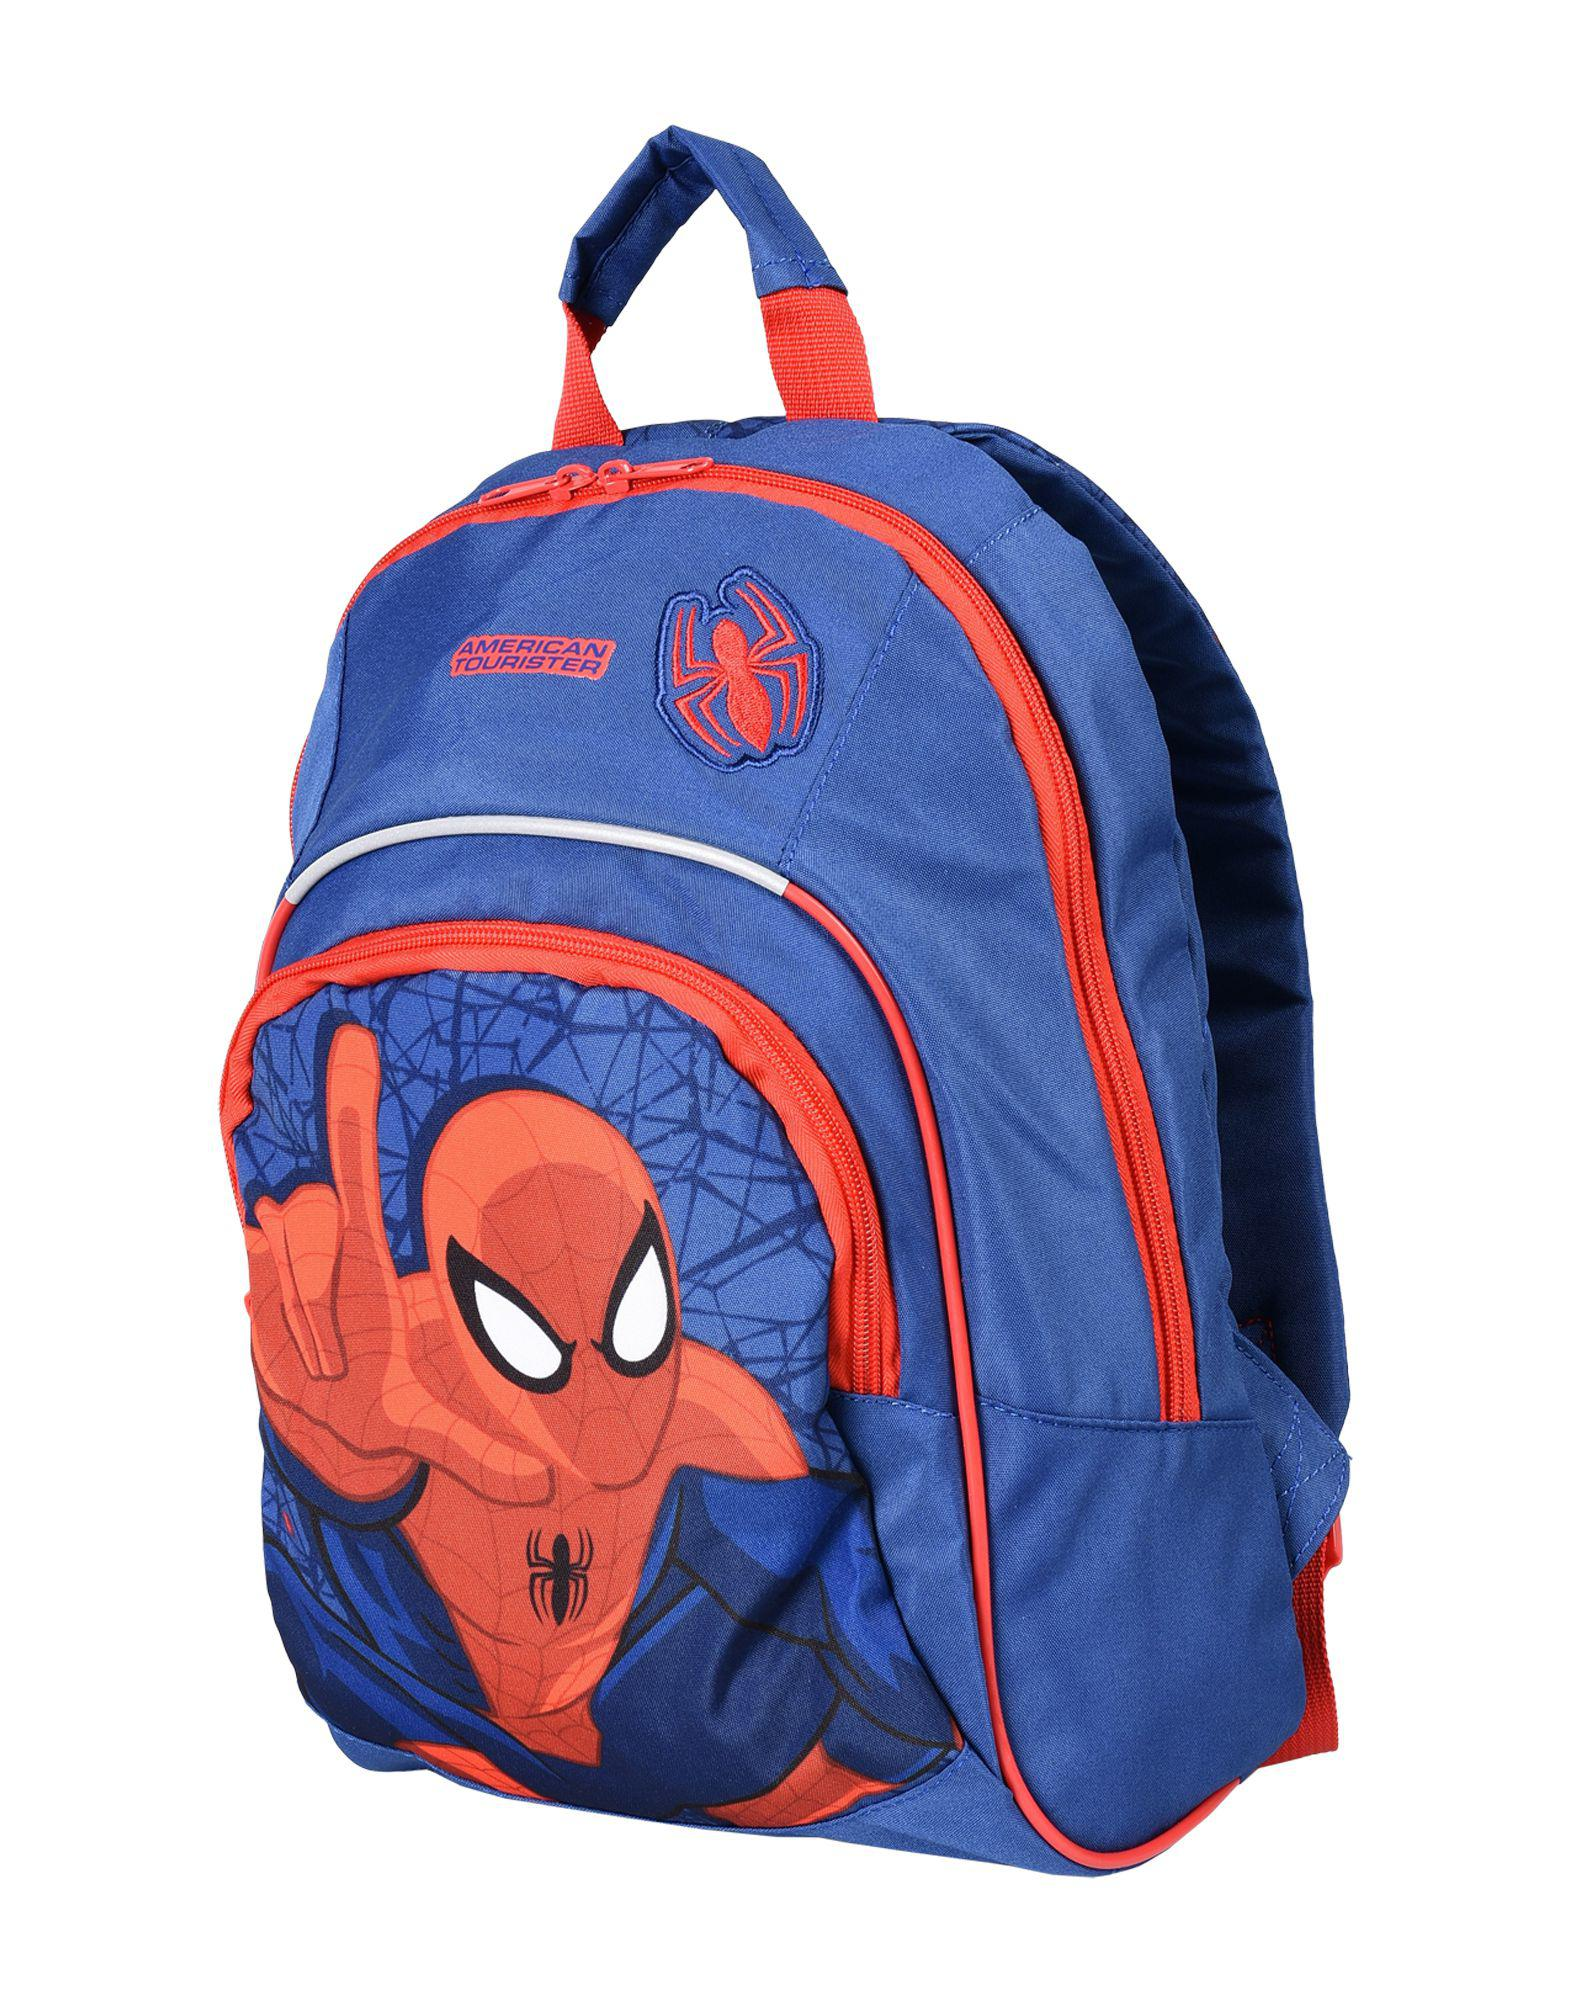 BAGS - Backpacks & Bum bags American Tourister 9IoucH